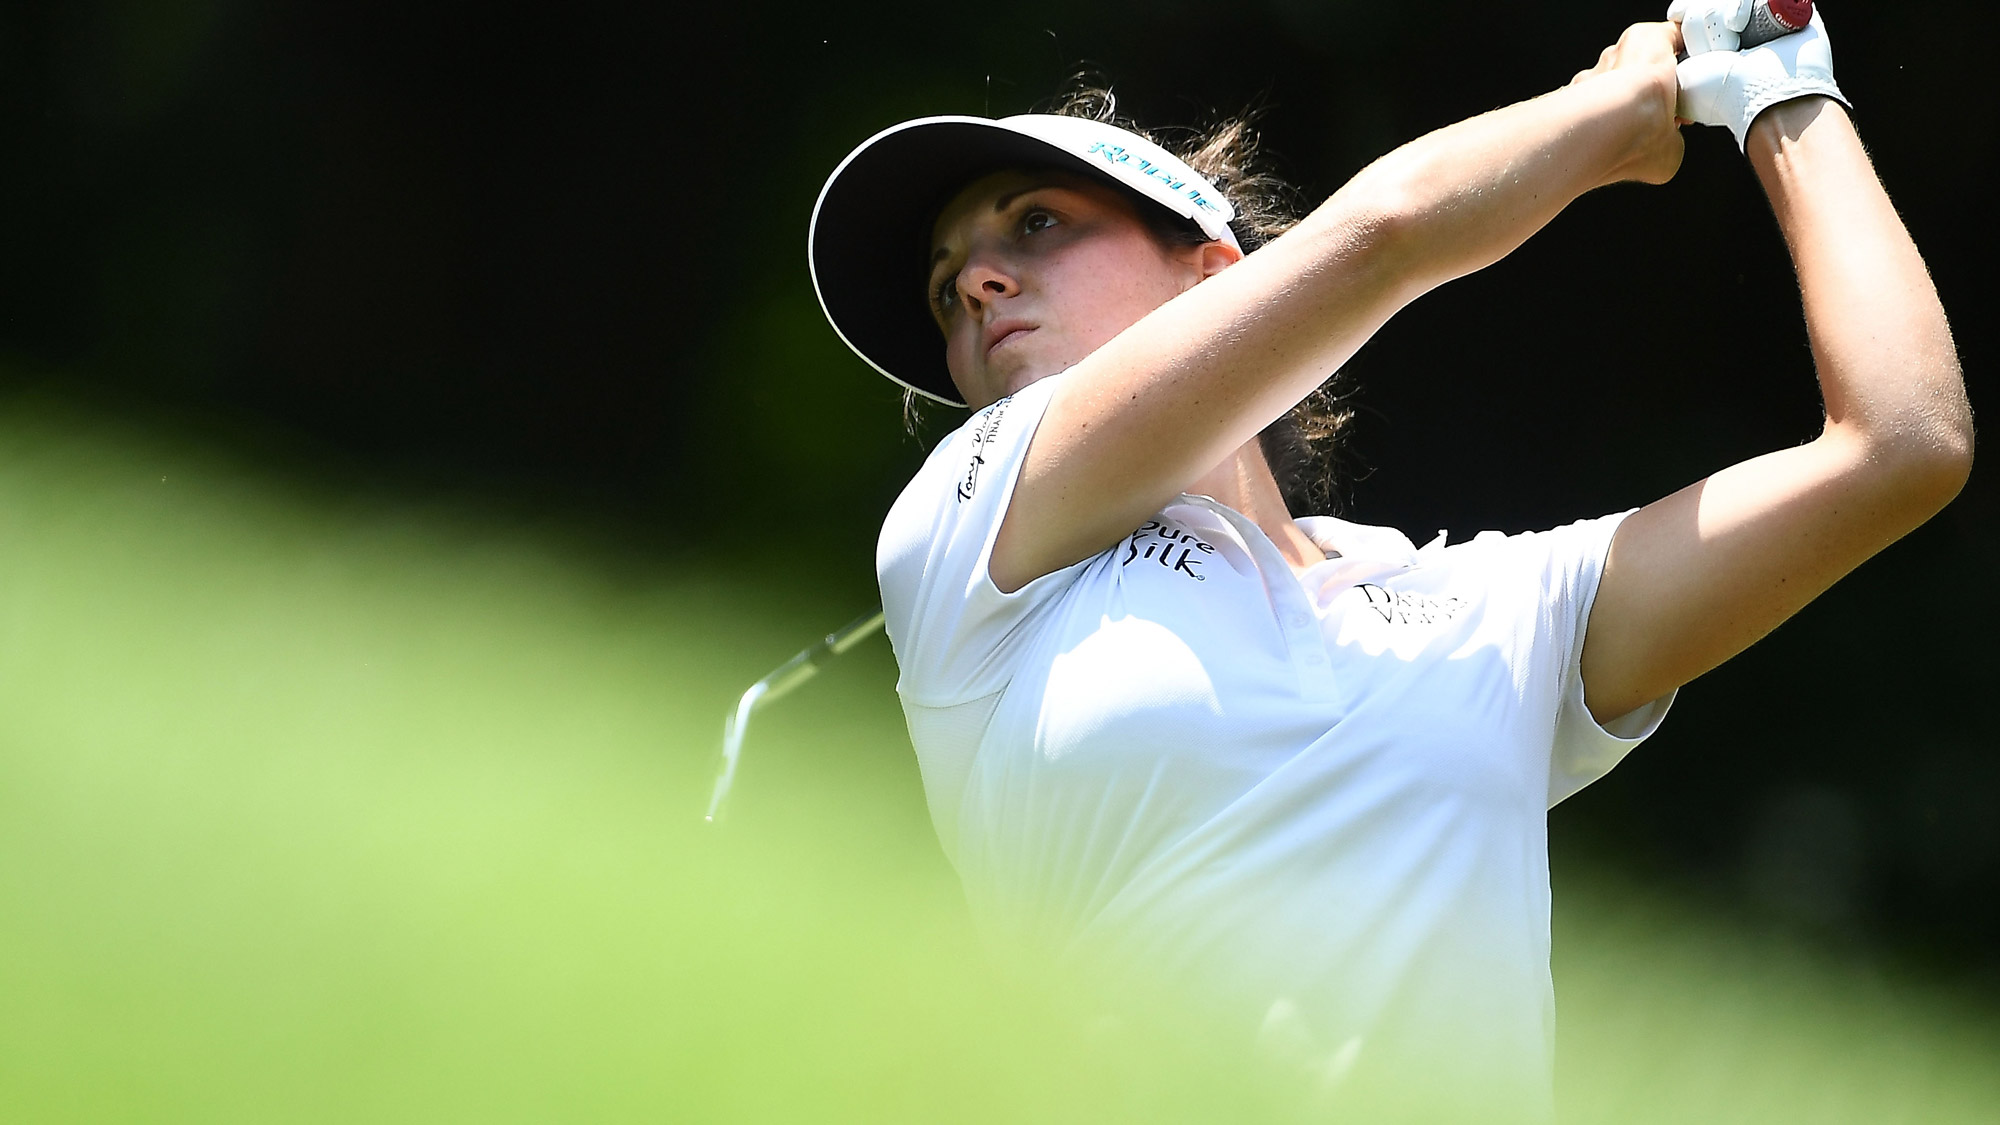 Emma Talley Swings at the Thornberry Creek LPGA Classic